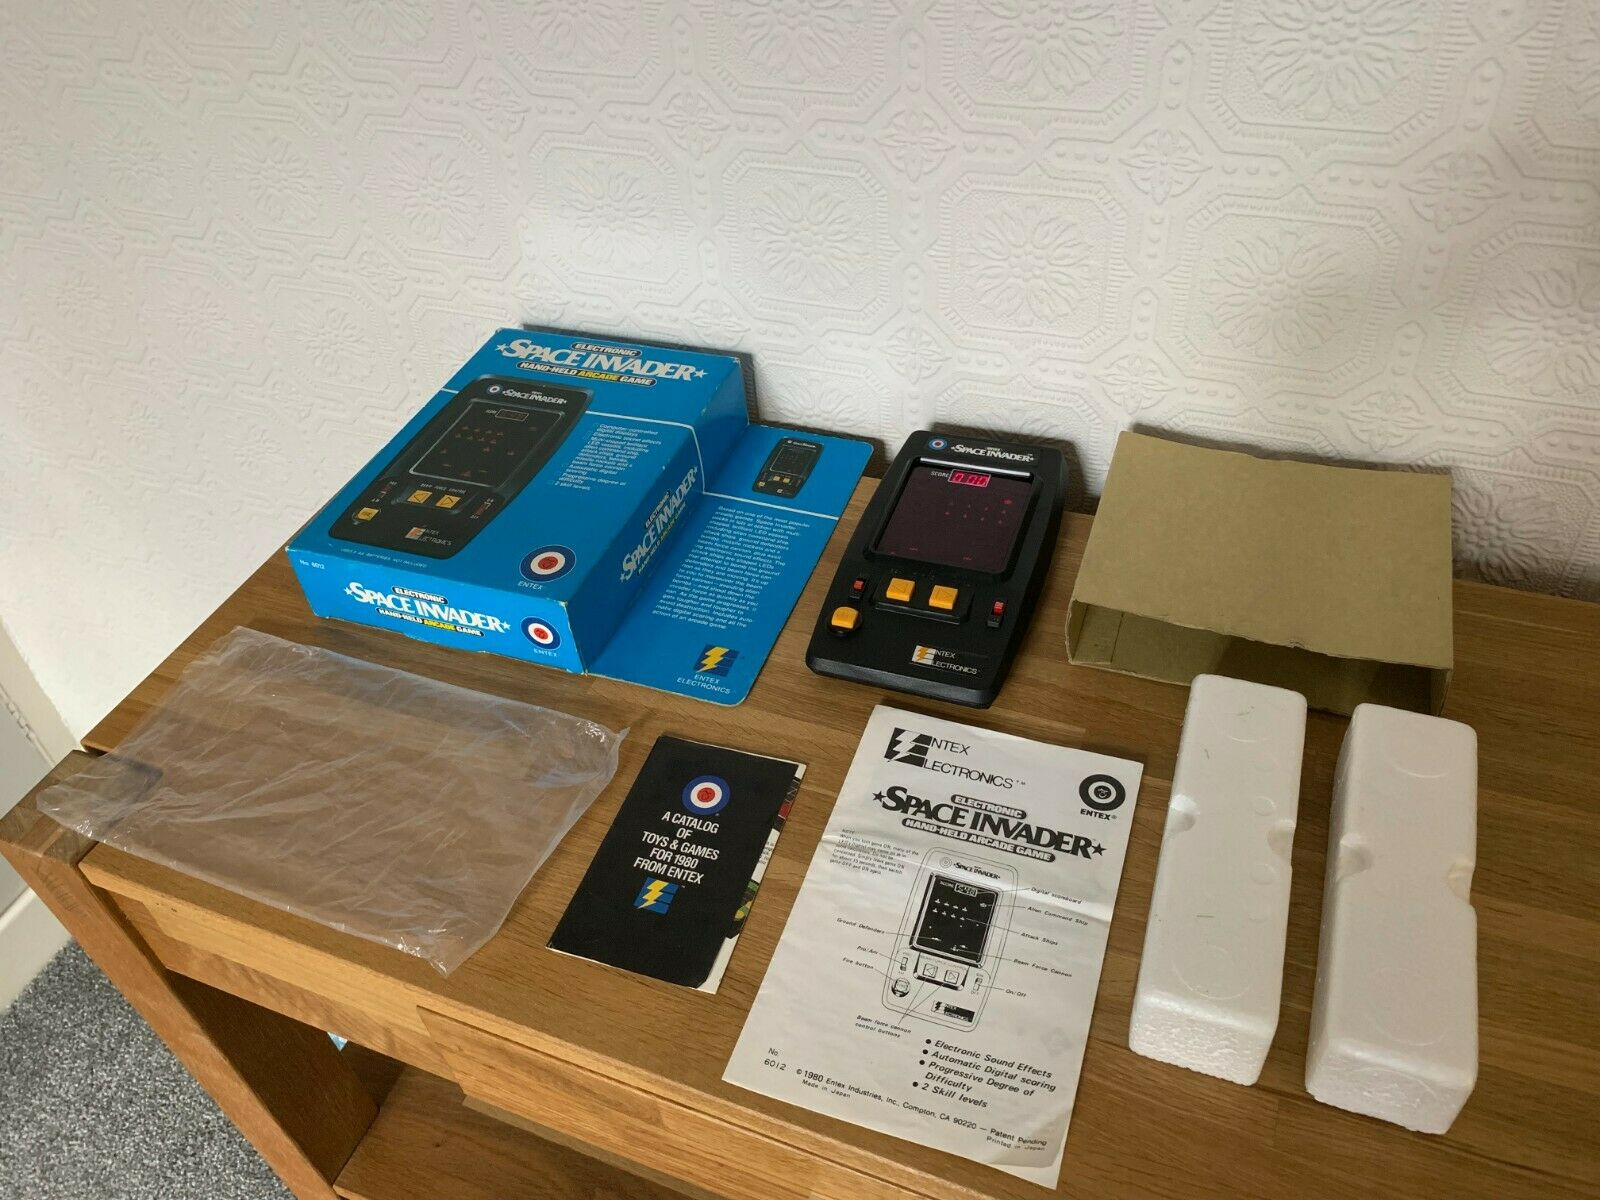 Superb Boxed Entex Space Invader Vintage 1980 Handheld Electronic Game Near Mint